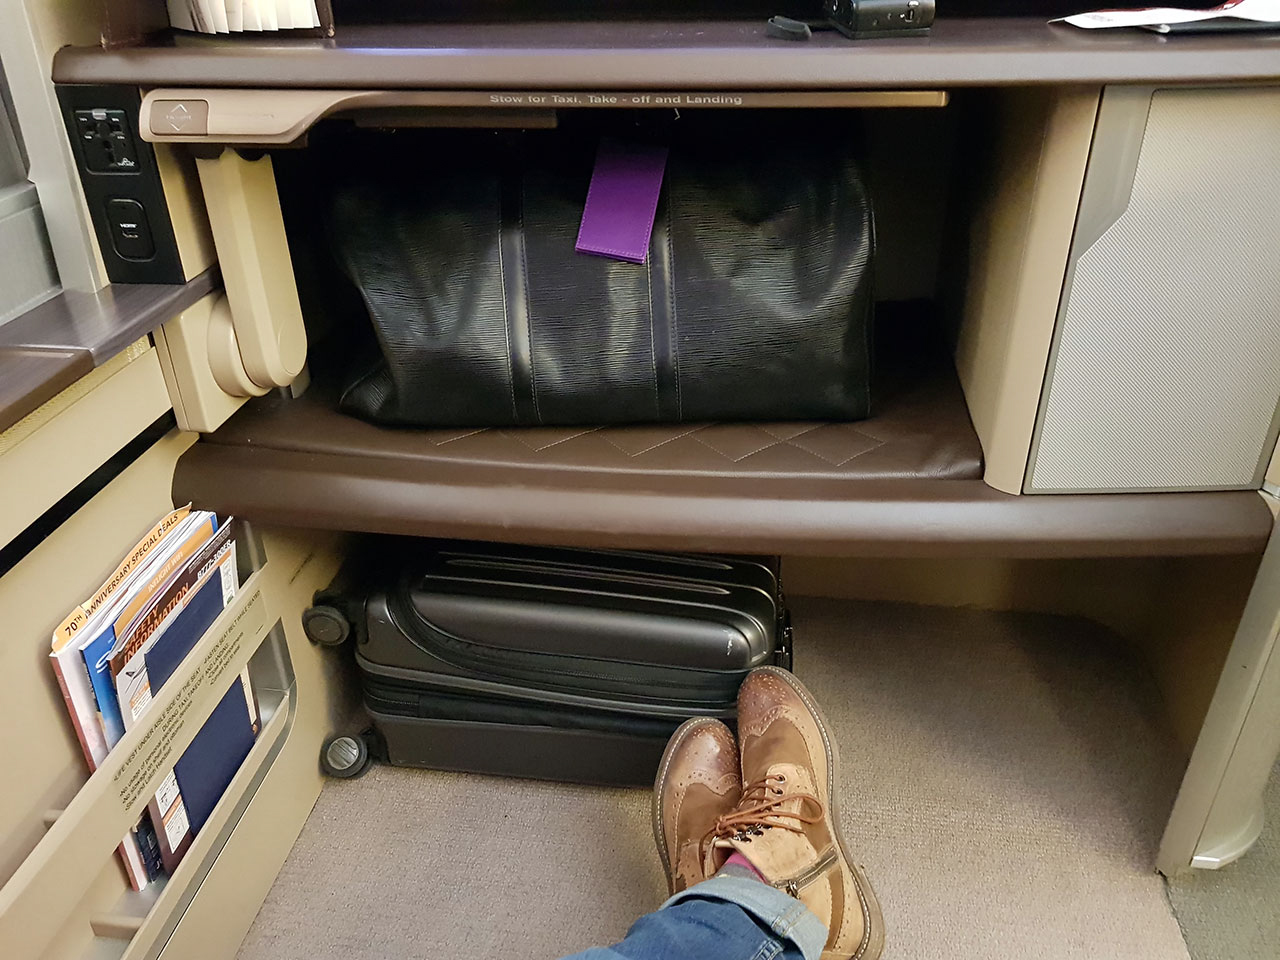 Singapore Airlines 777-300ER First Class storage space